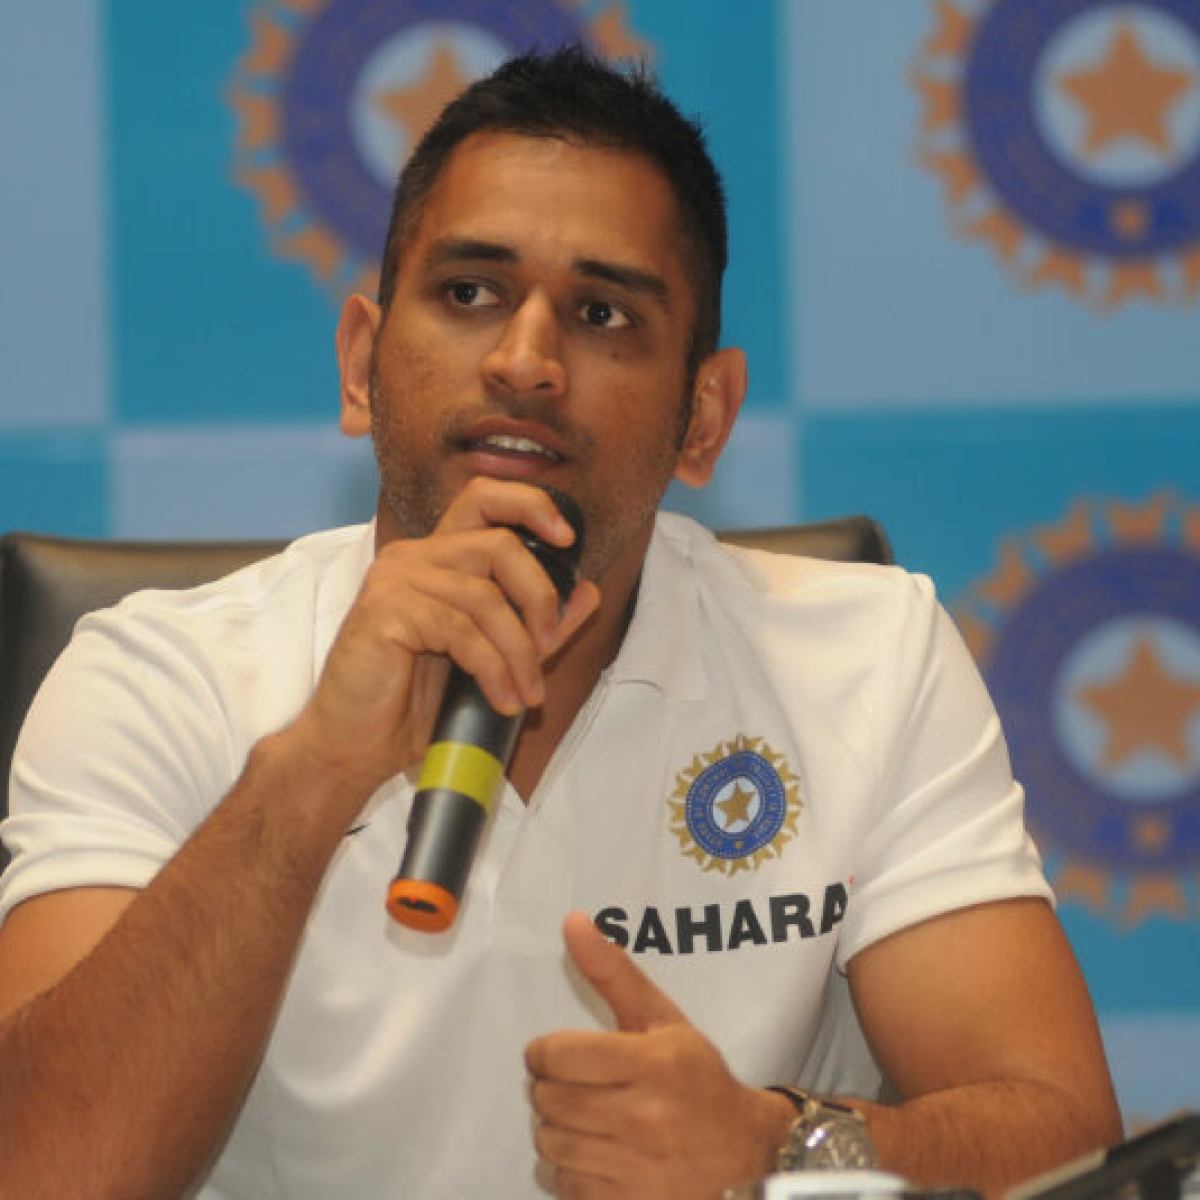 World Cup 2019: 4 Indian cricketers who are likely to play their last World Cup